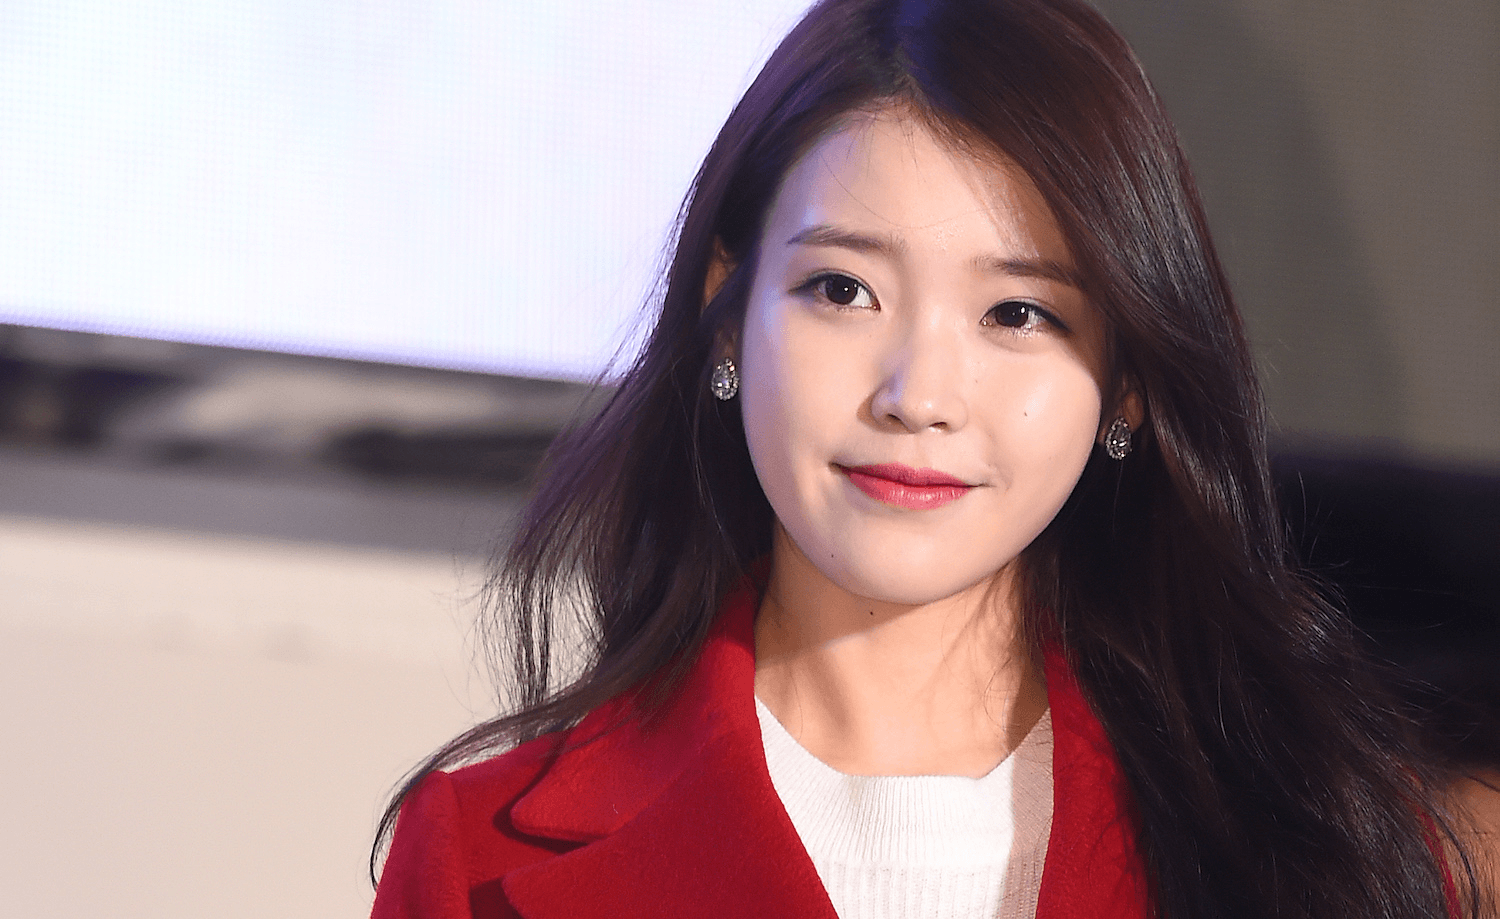 iu praises her fan publicly for her beautiful fan art